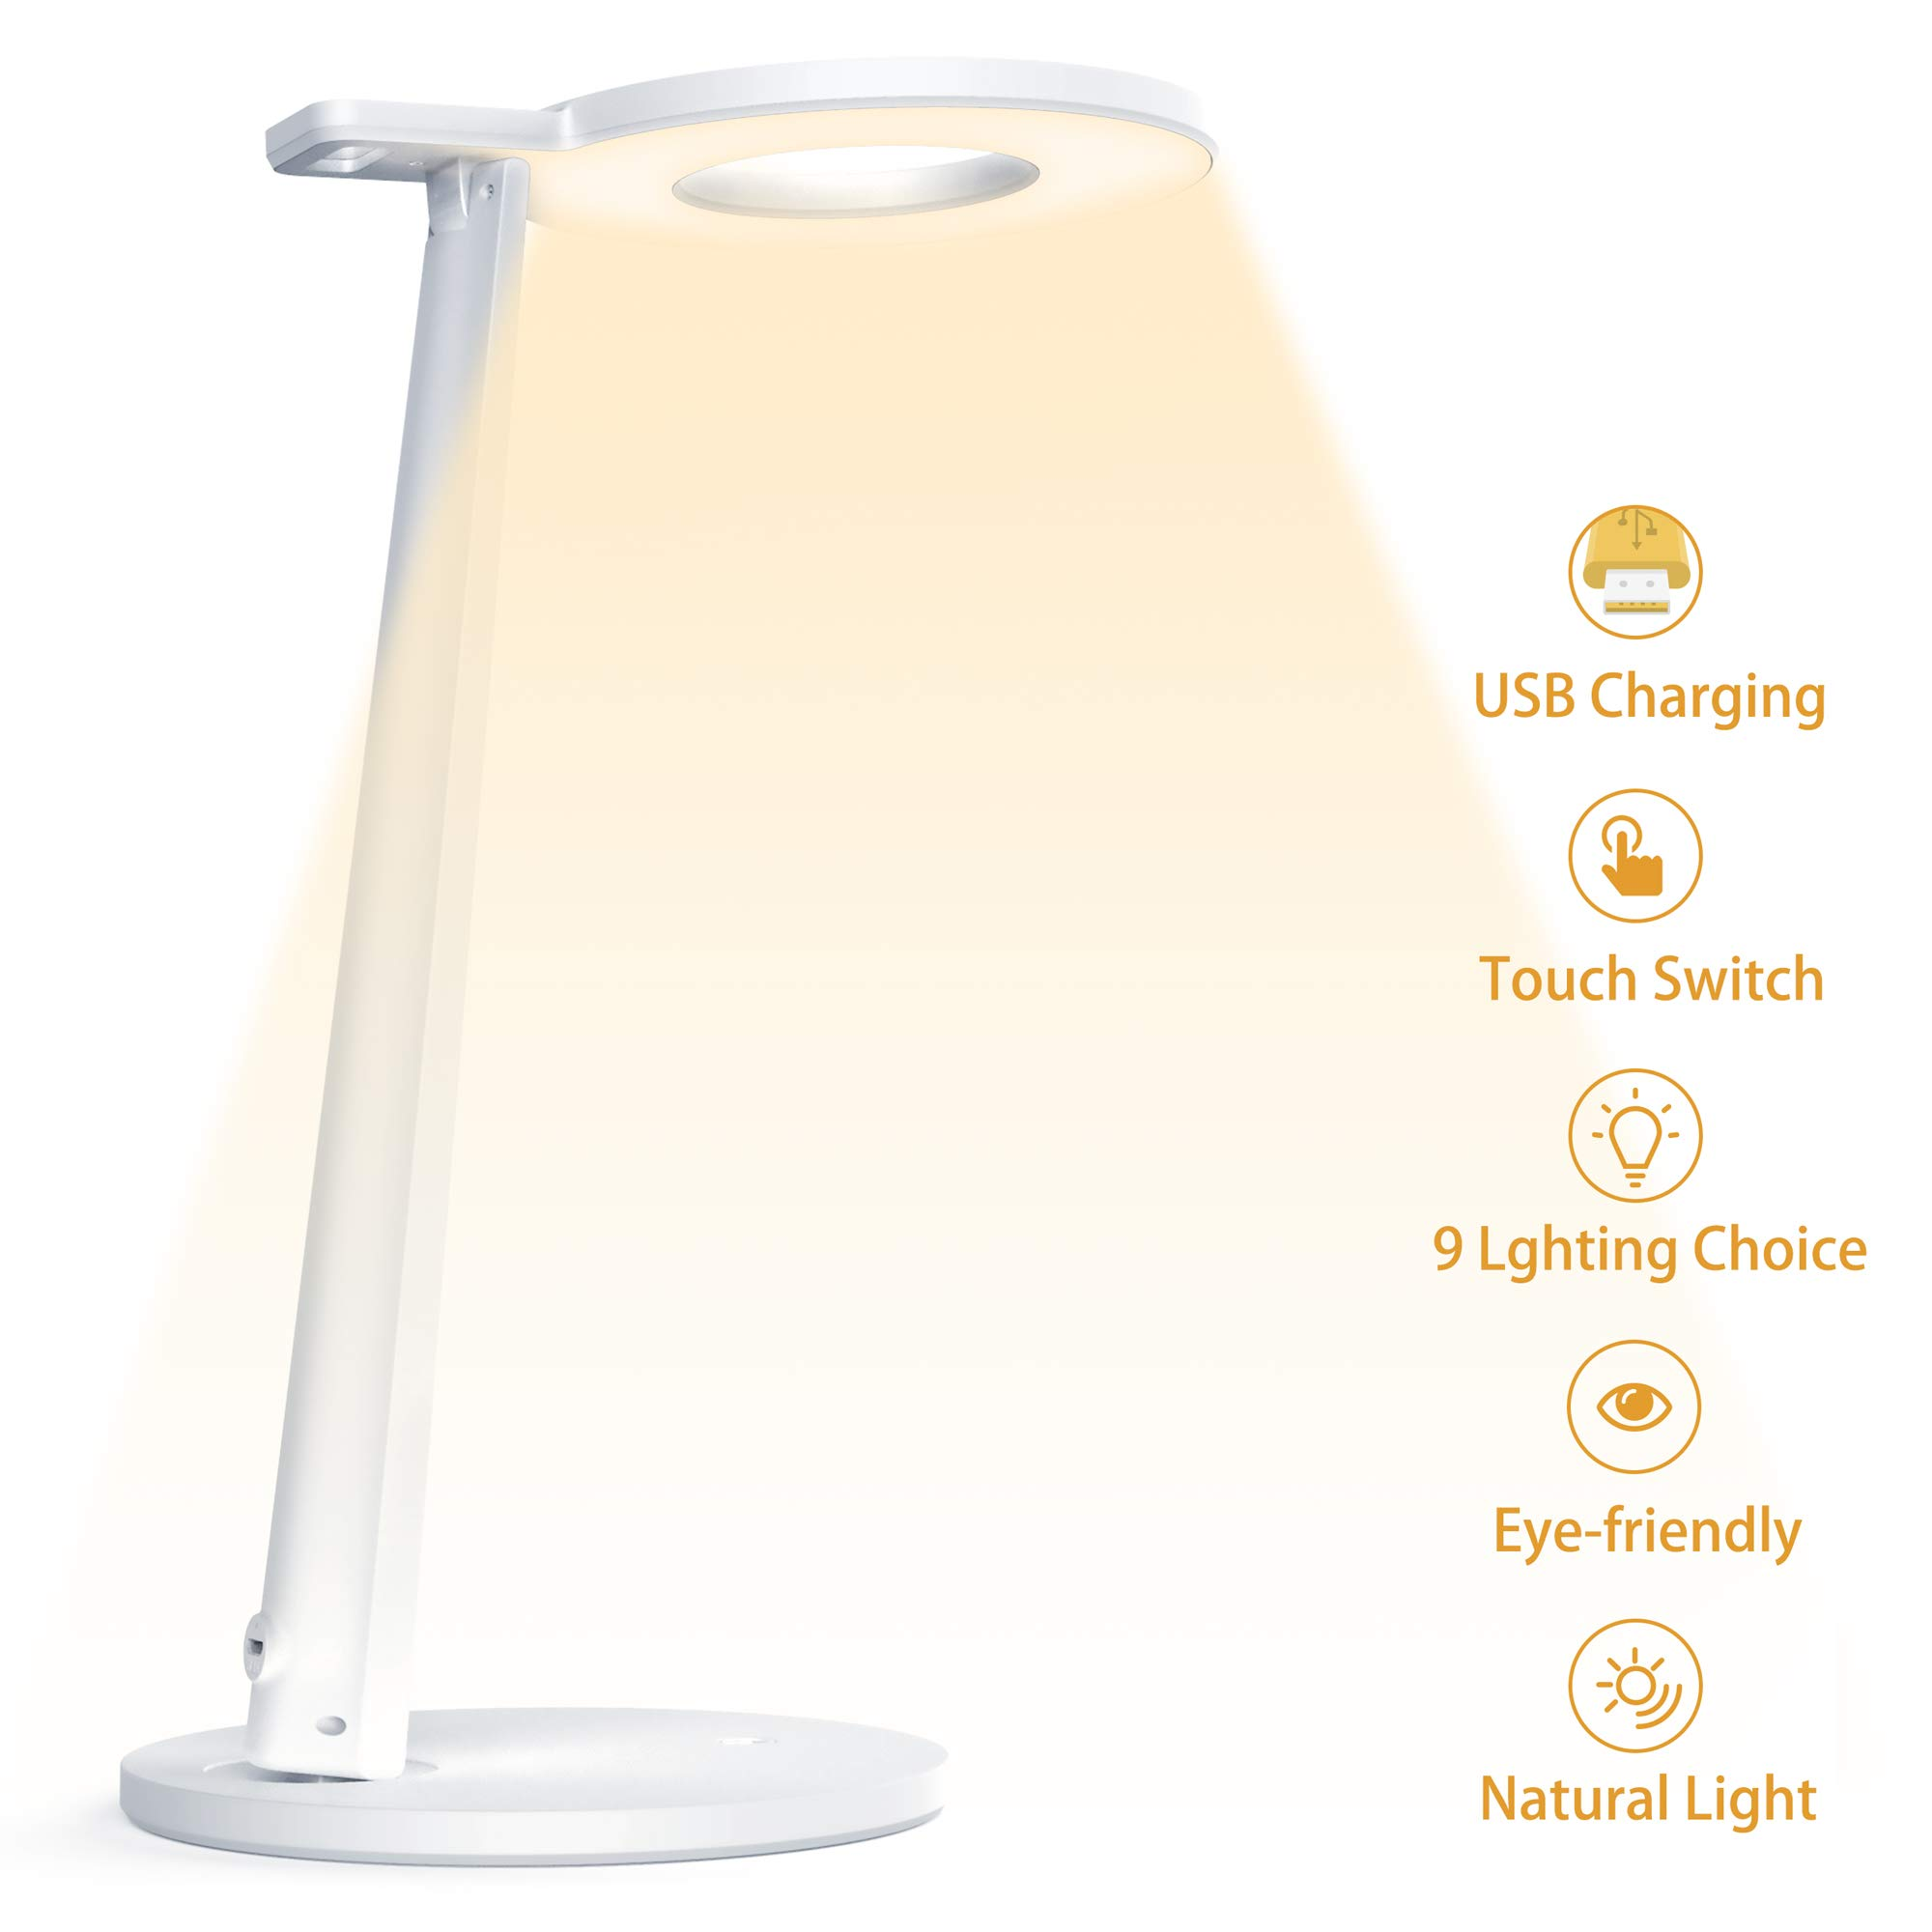 Tesecu LED Desk Lamp USB for Study Dorm Office Dimmable Eye-Caring 3 Lighting Modes 3 Brightness Levels, Sensitive Touch Control, with USB Charging Port, White by Tesecu